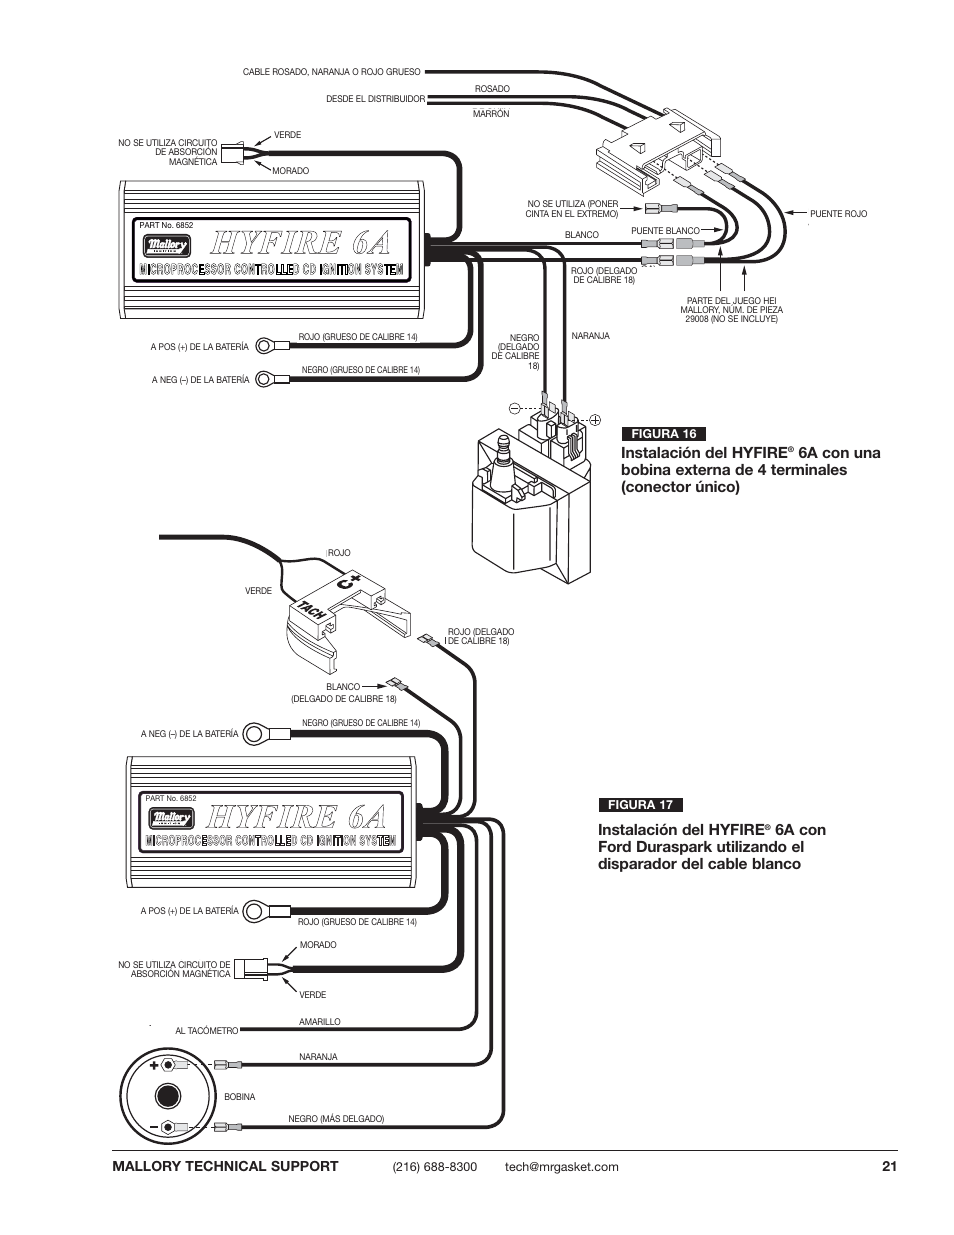 Mallory 29440 Wiring Diagram - Wiring Diagram G11 on